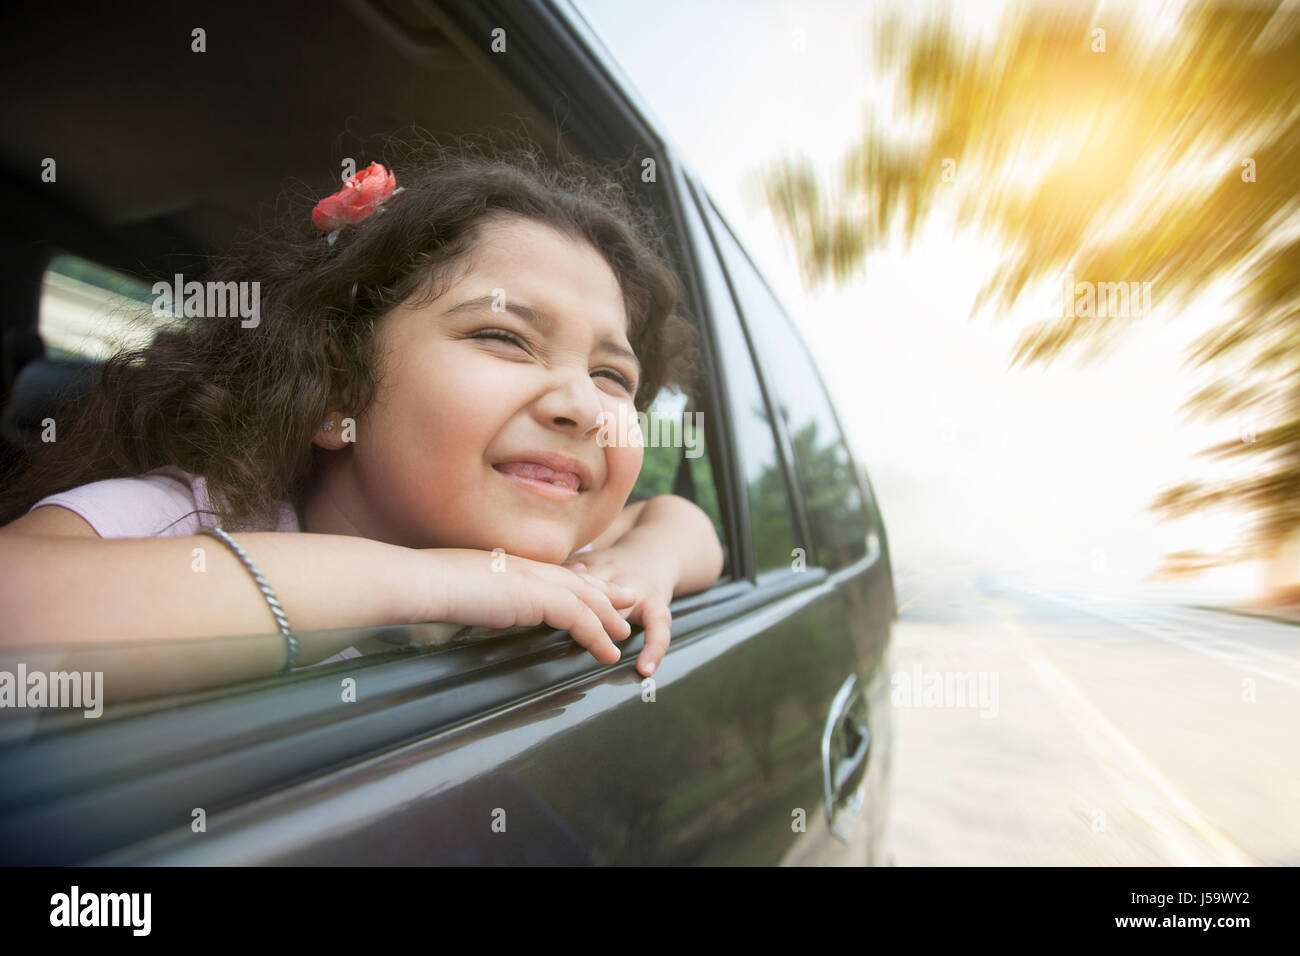 Smiling girl looking out car window Photo Stock